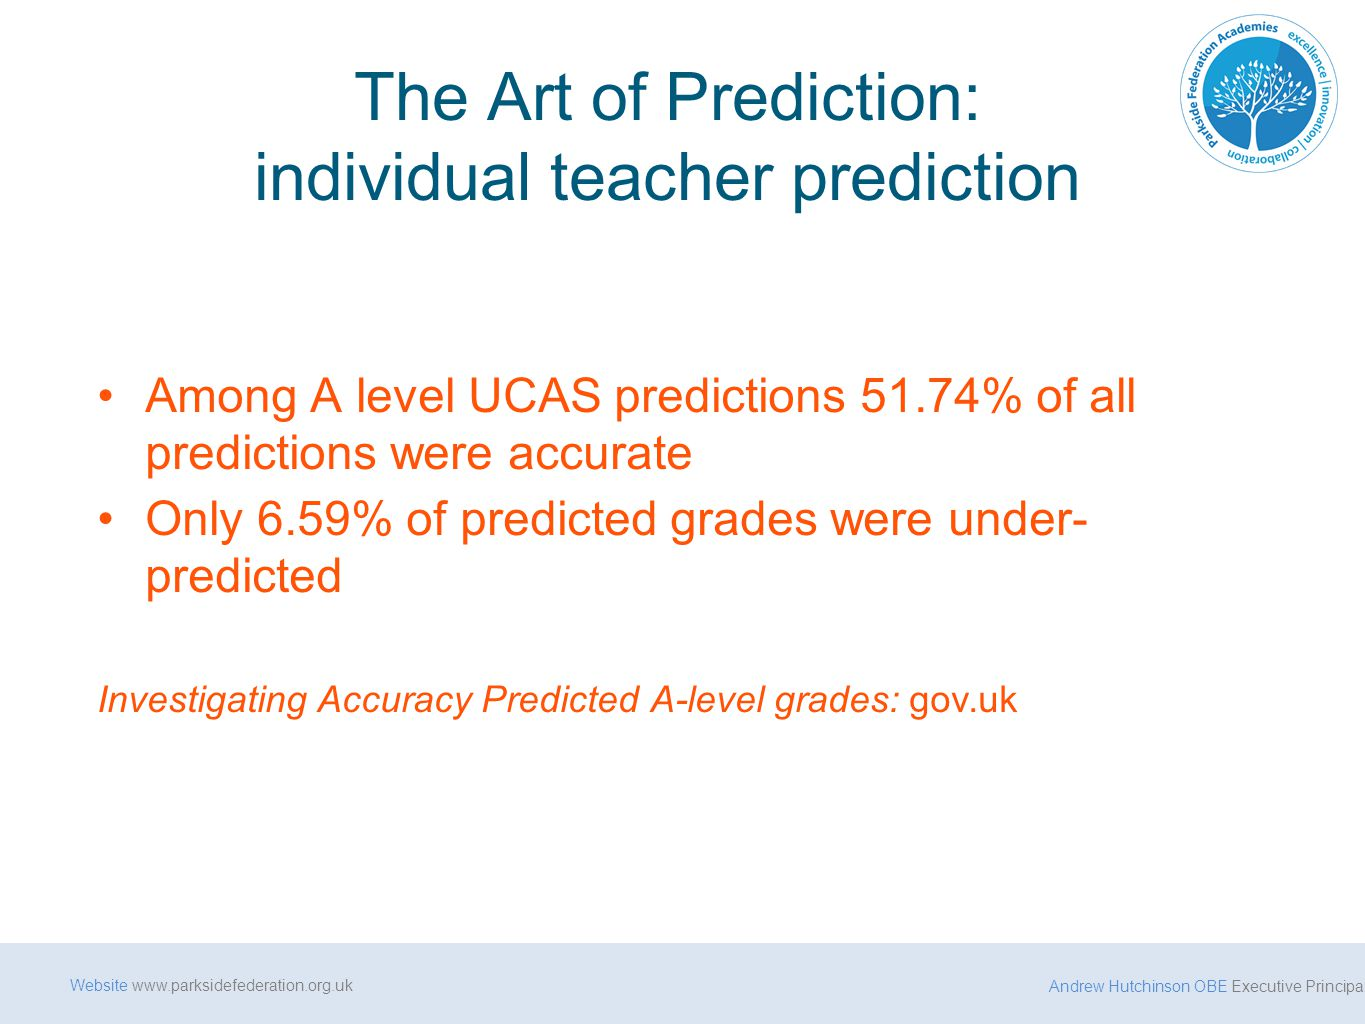 Andrew Hutchinson OBE Executive Principal Website www.parksidefederation.org.uk The Art of Prediction: individual teacher prediction Among A level UCAS predictions 51.74% of all predictions were accurate Only 6.59% of predicted grades were under- predicted Investigating Accuracy Predicted A-level grades: gov.uk